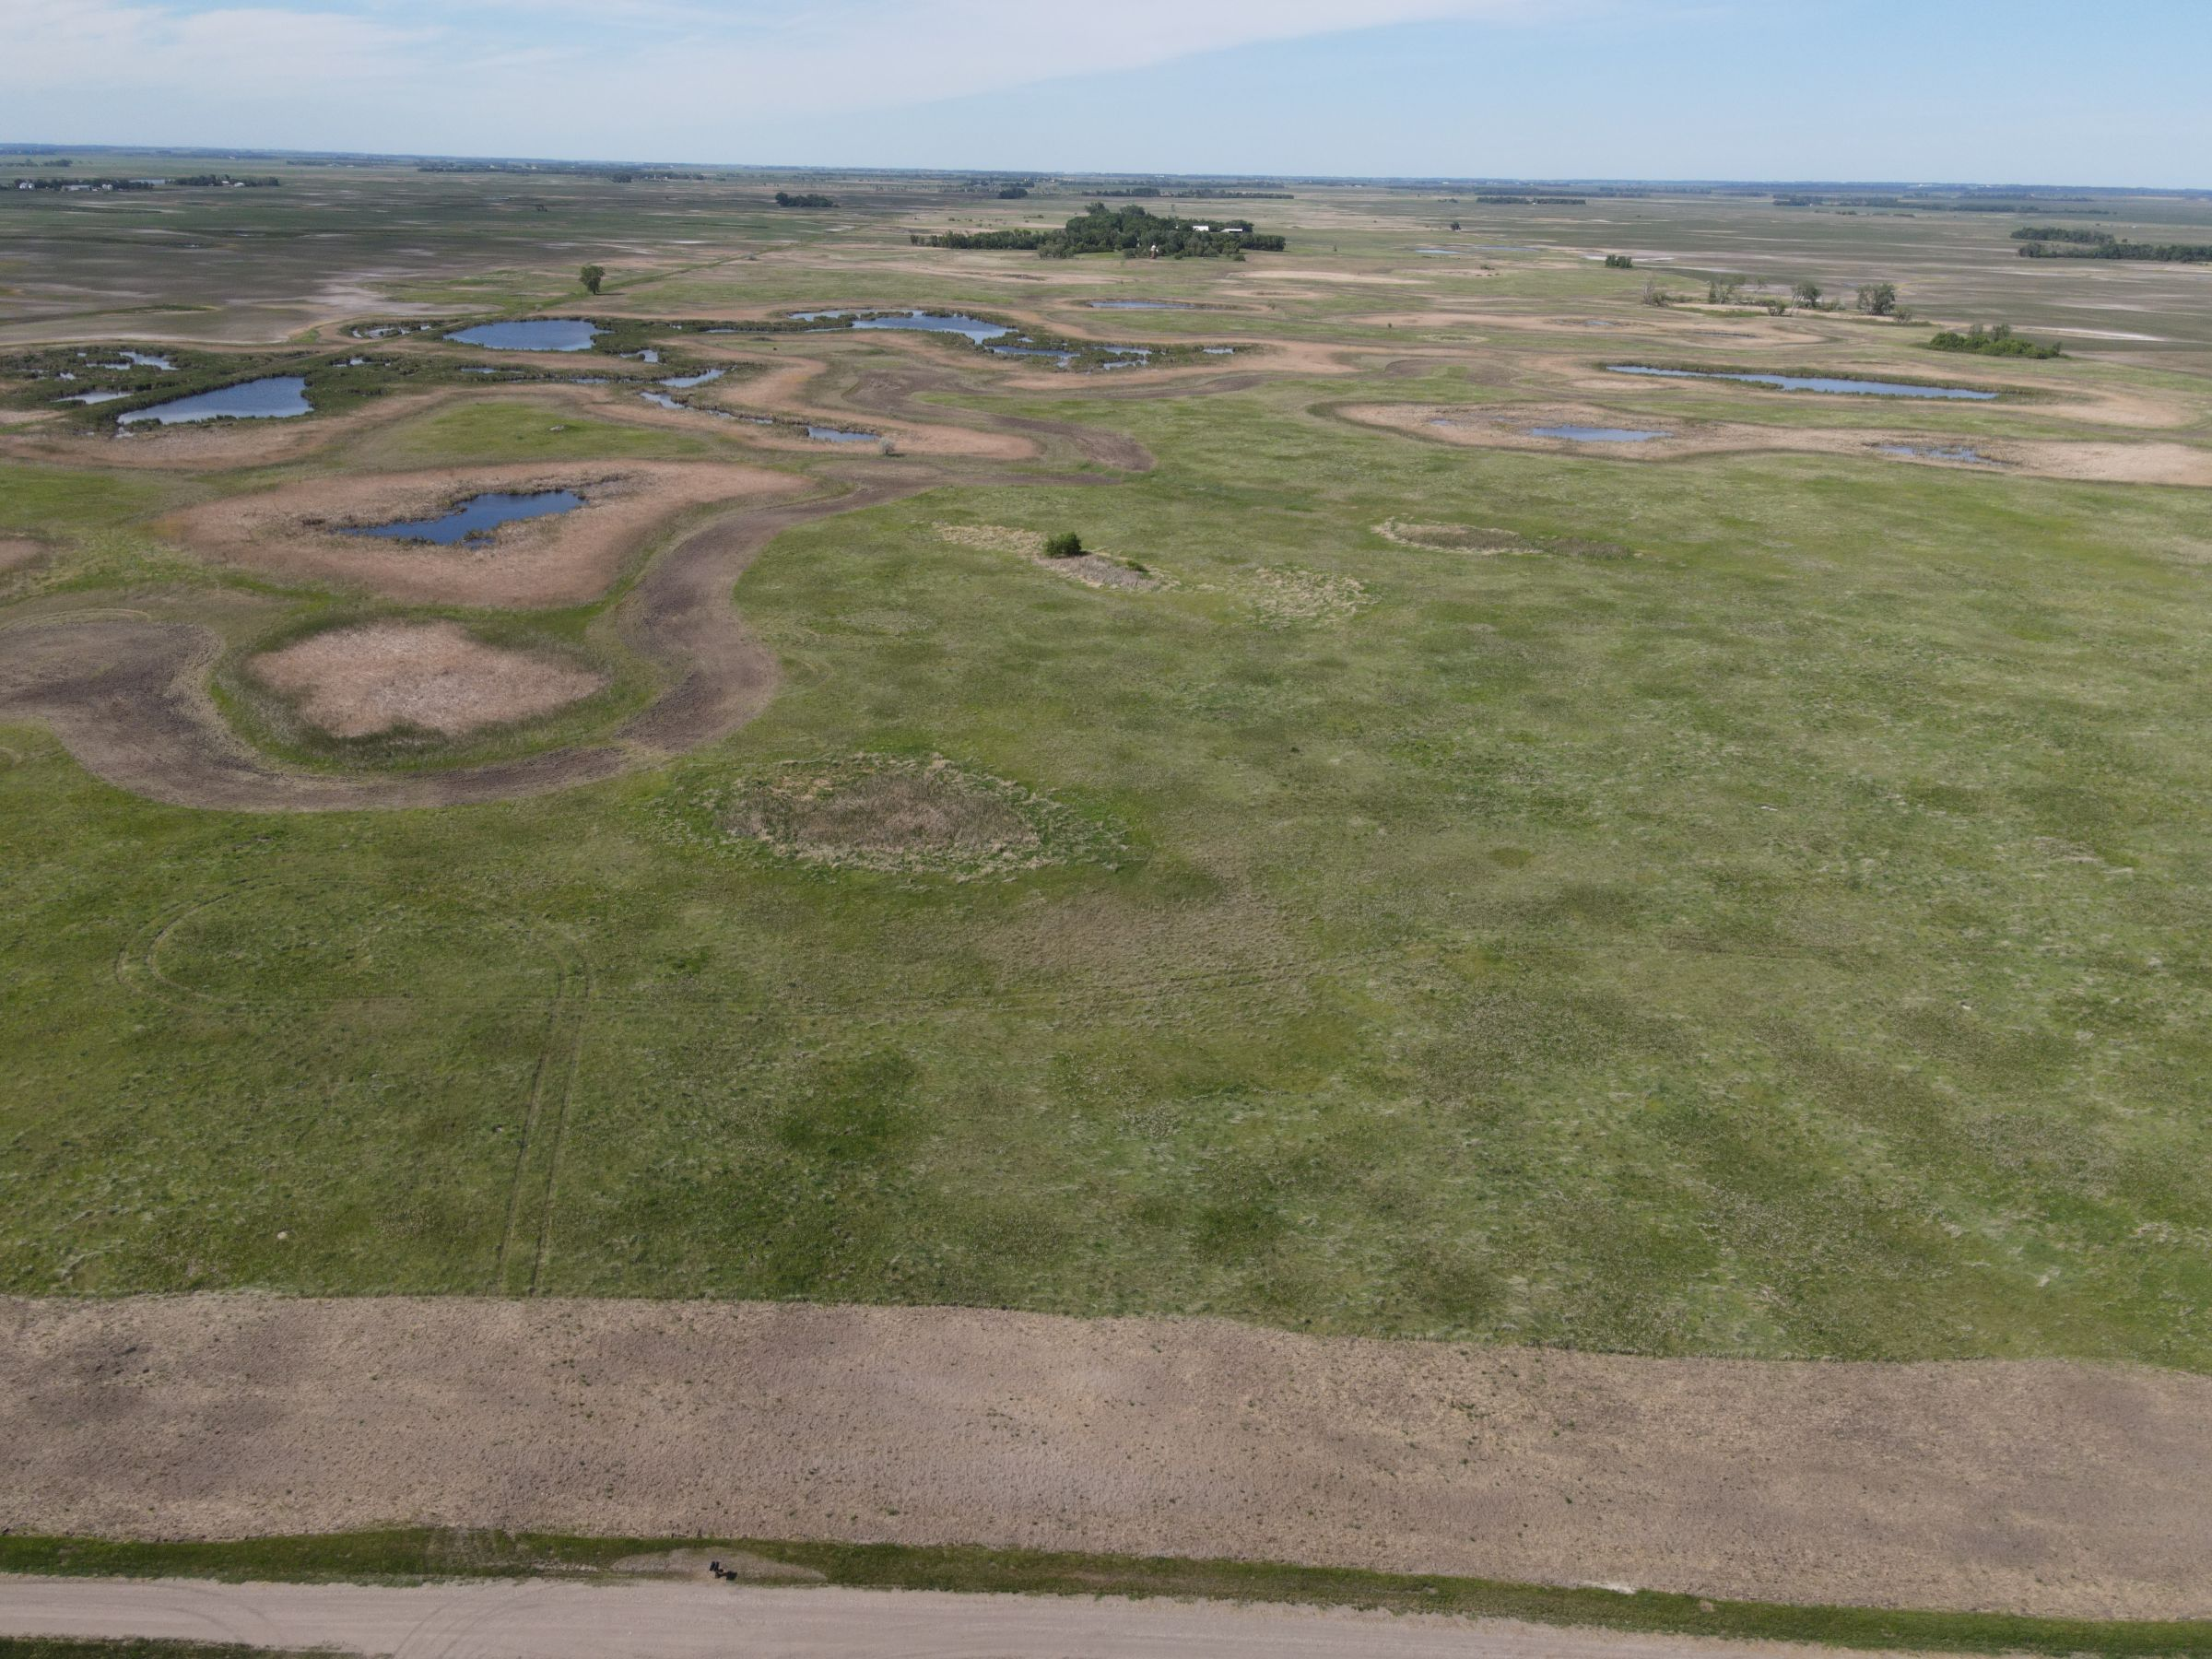 auctions-cass-county-north-dakota-320-acres-listing-number-15590-0-2021-06-22-191227.JPG